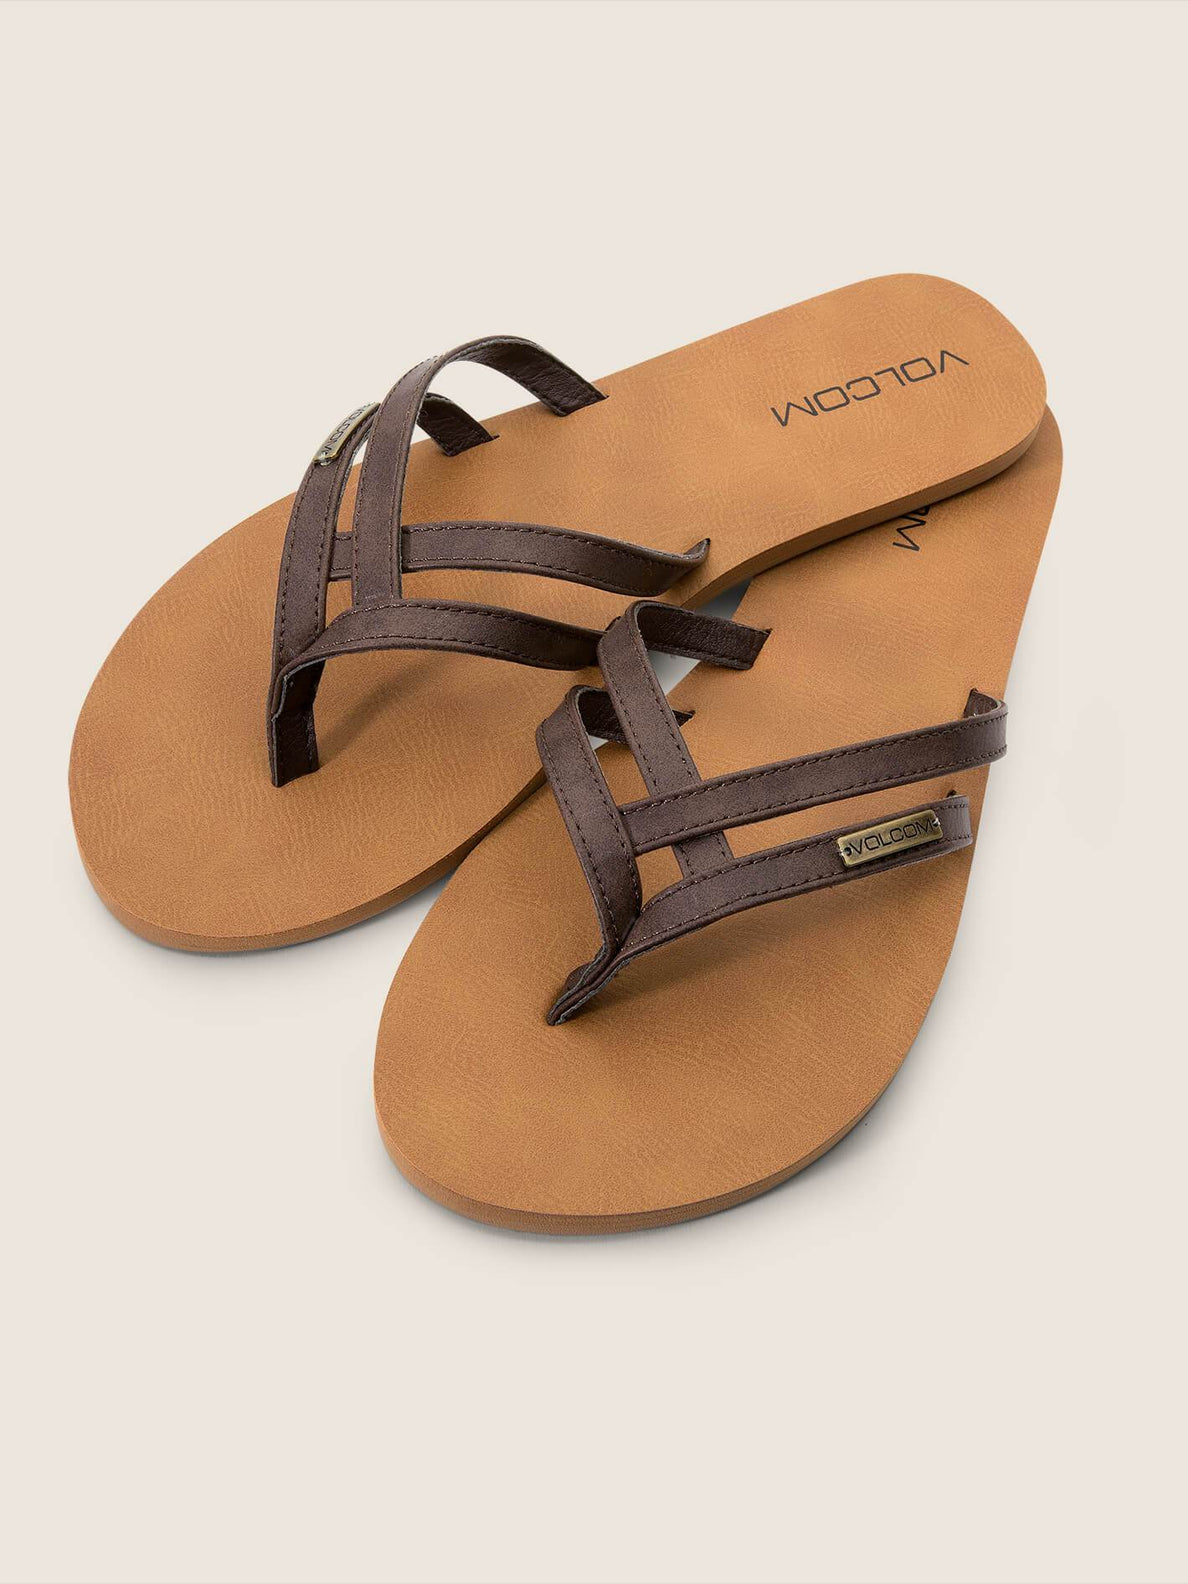 Crosstown Sandals In Brown, Front View